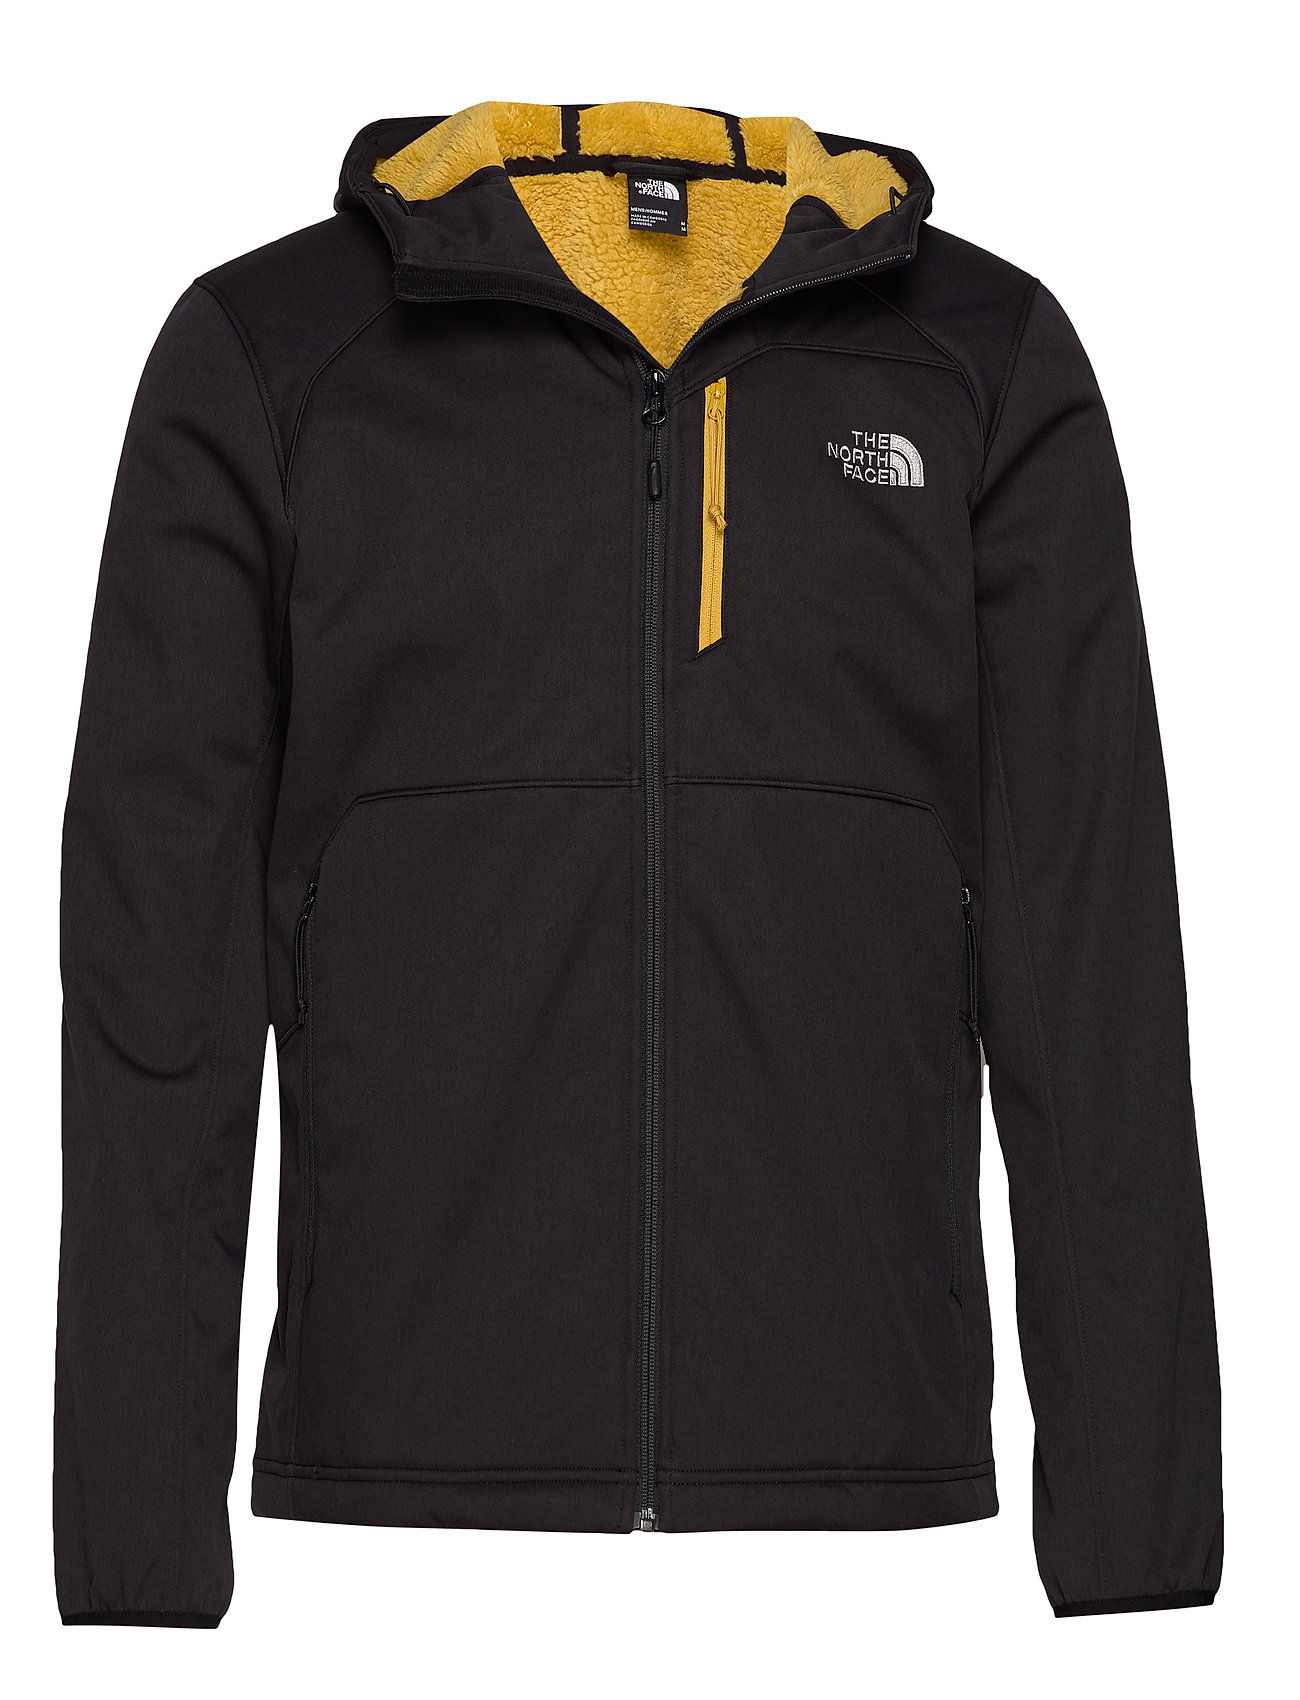 The North Face M QUEST HOODED SOFTS - TNF BLACK